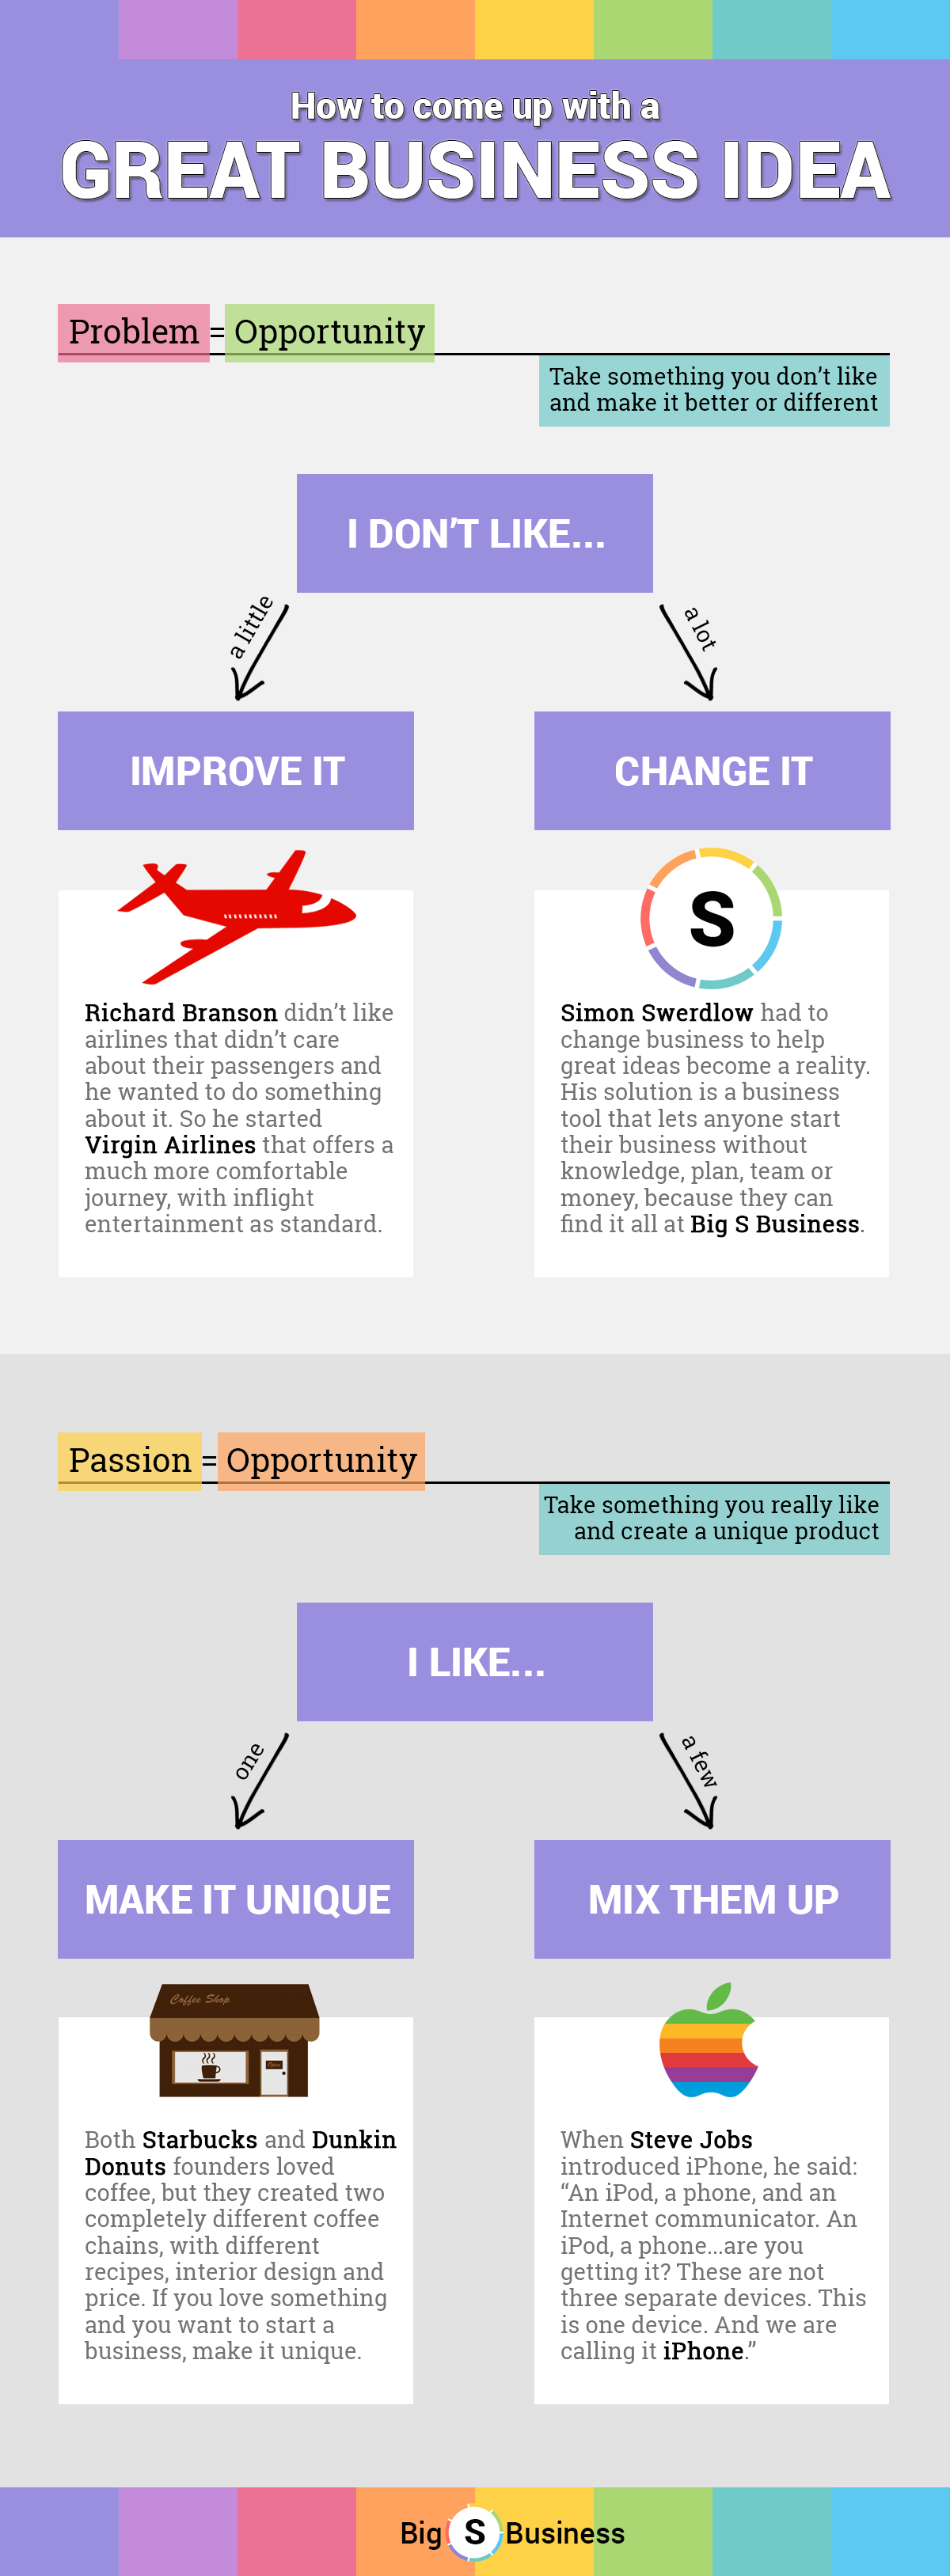 infographic: how to come up with a great business idea